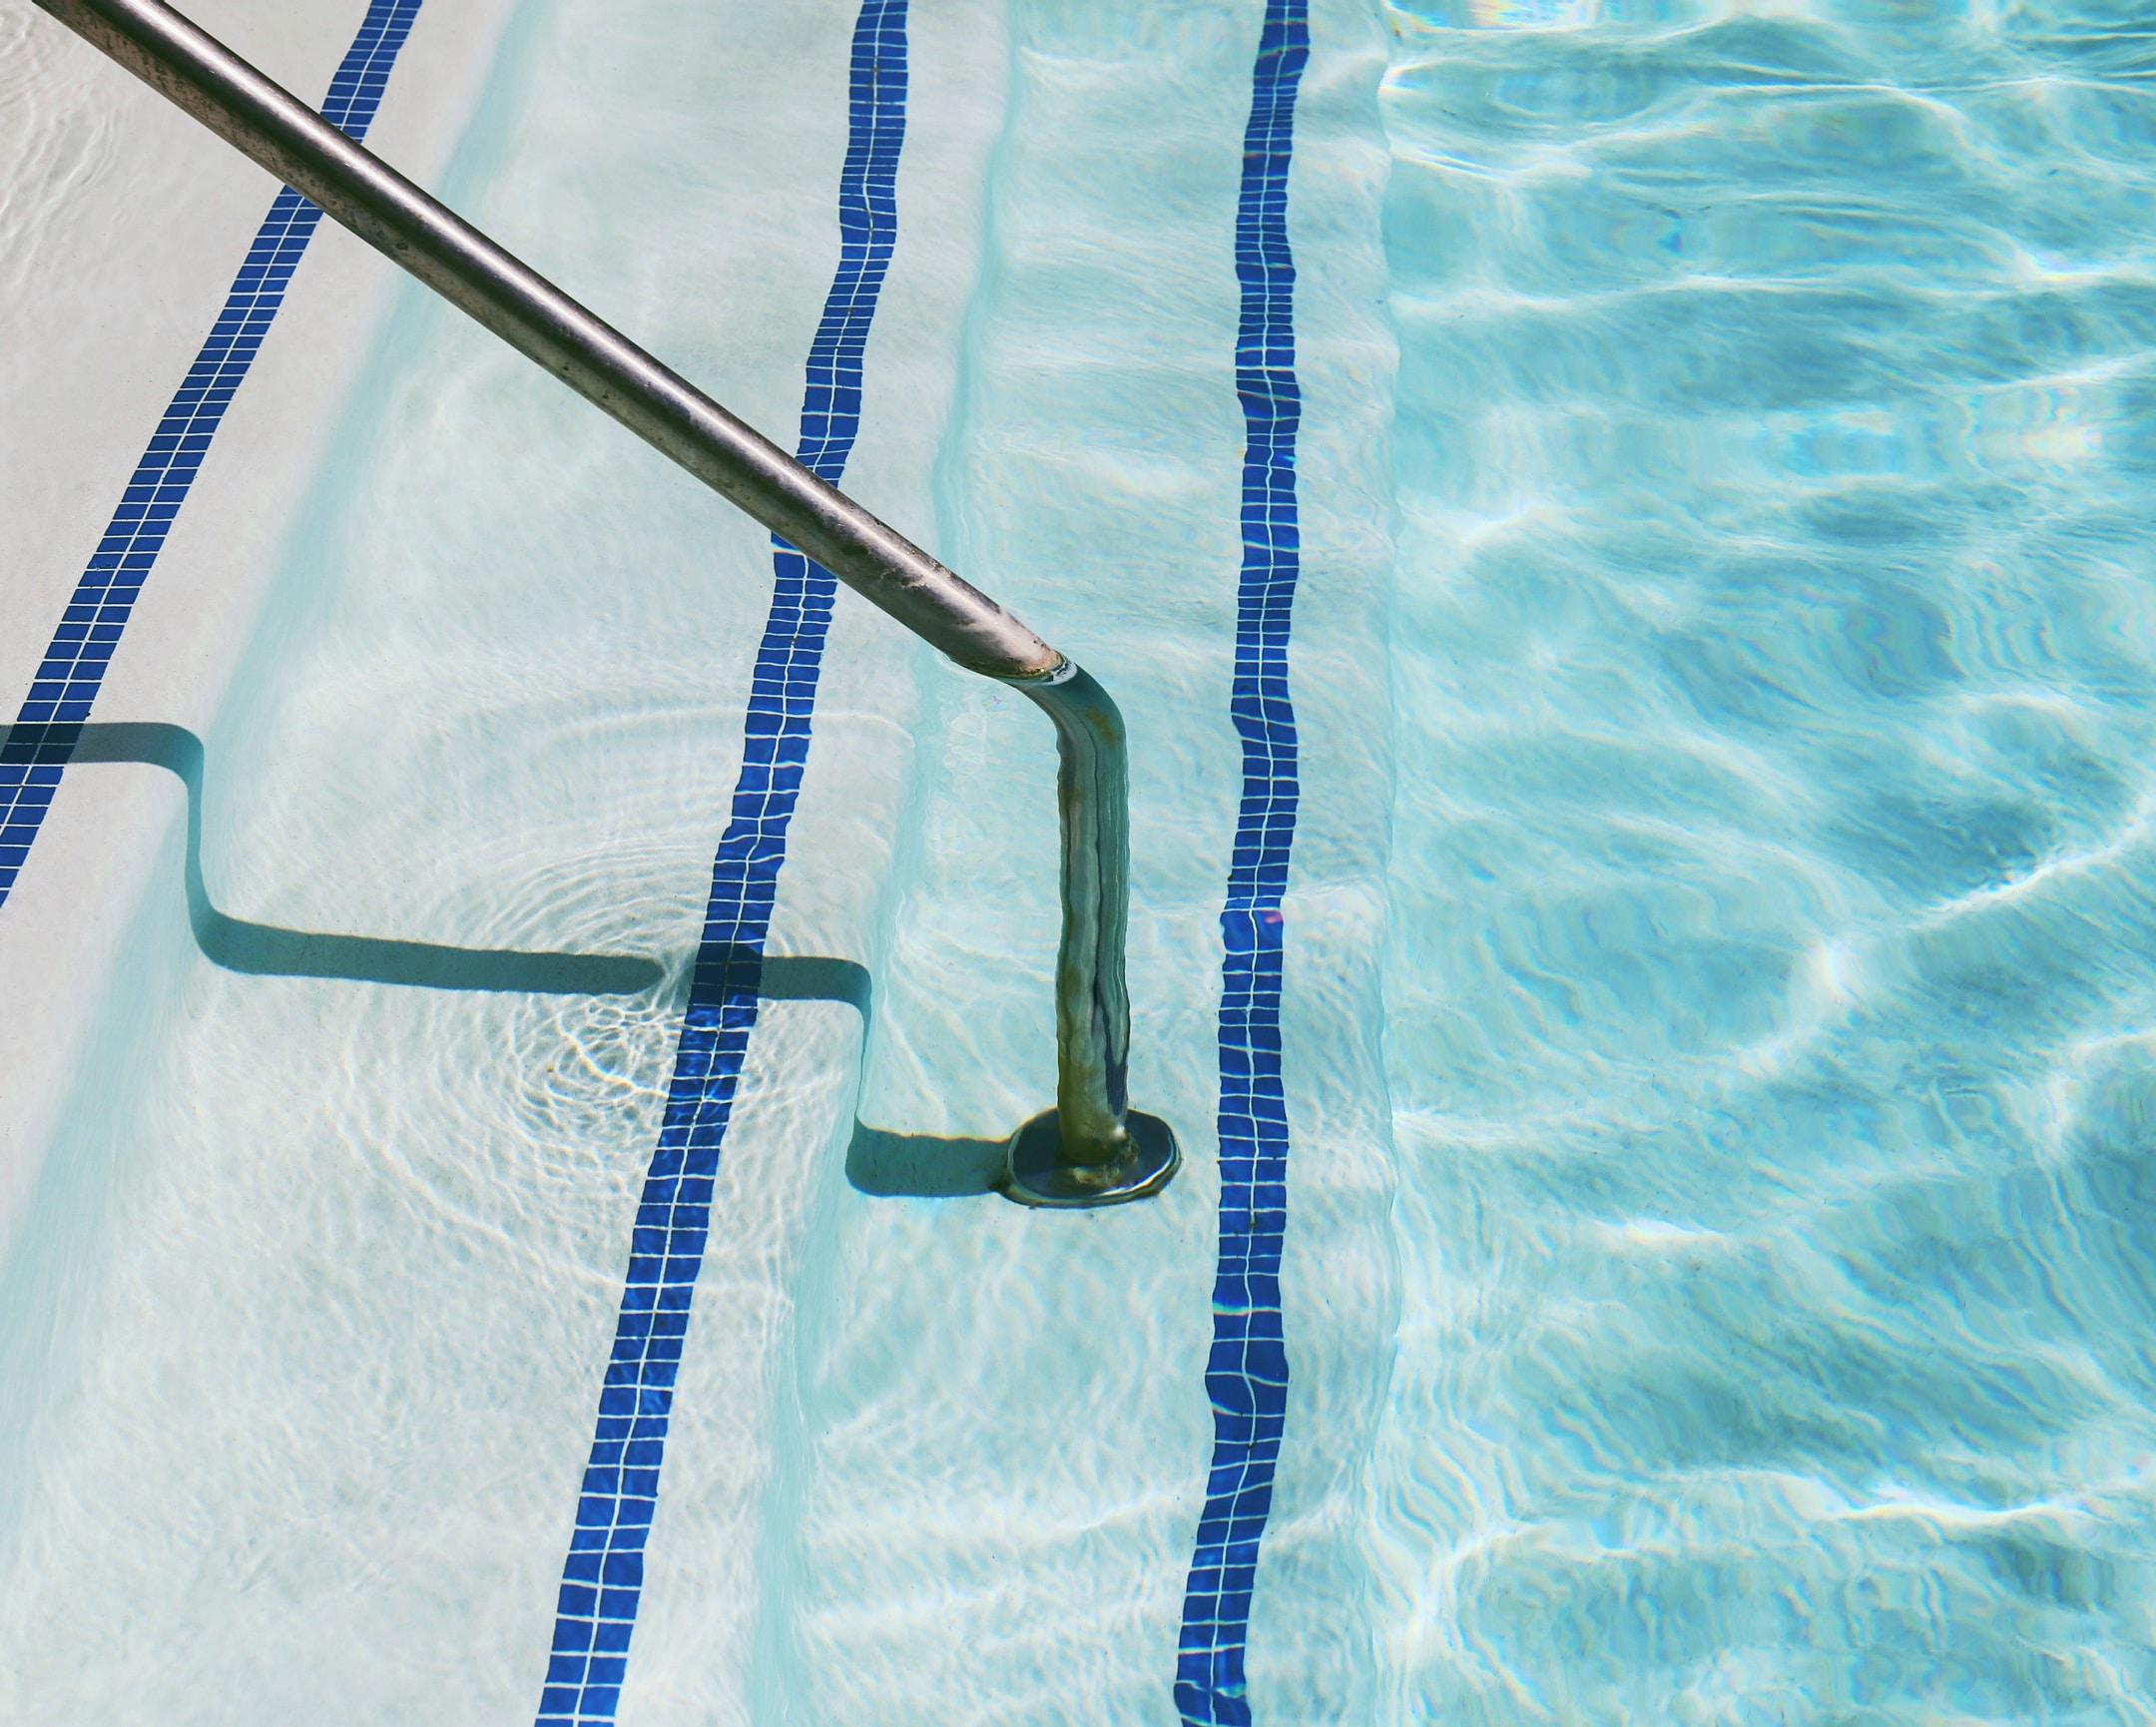 Vancouver Pool Cleaning Service